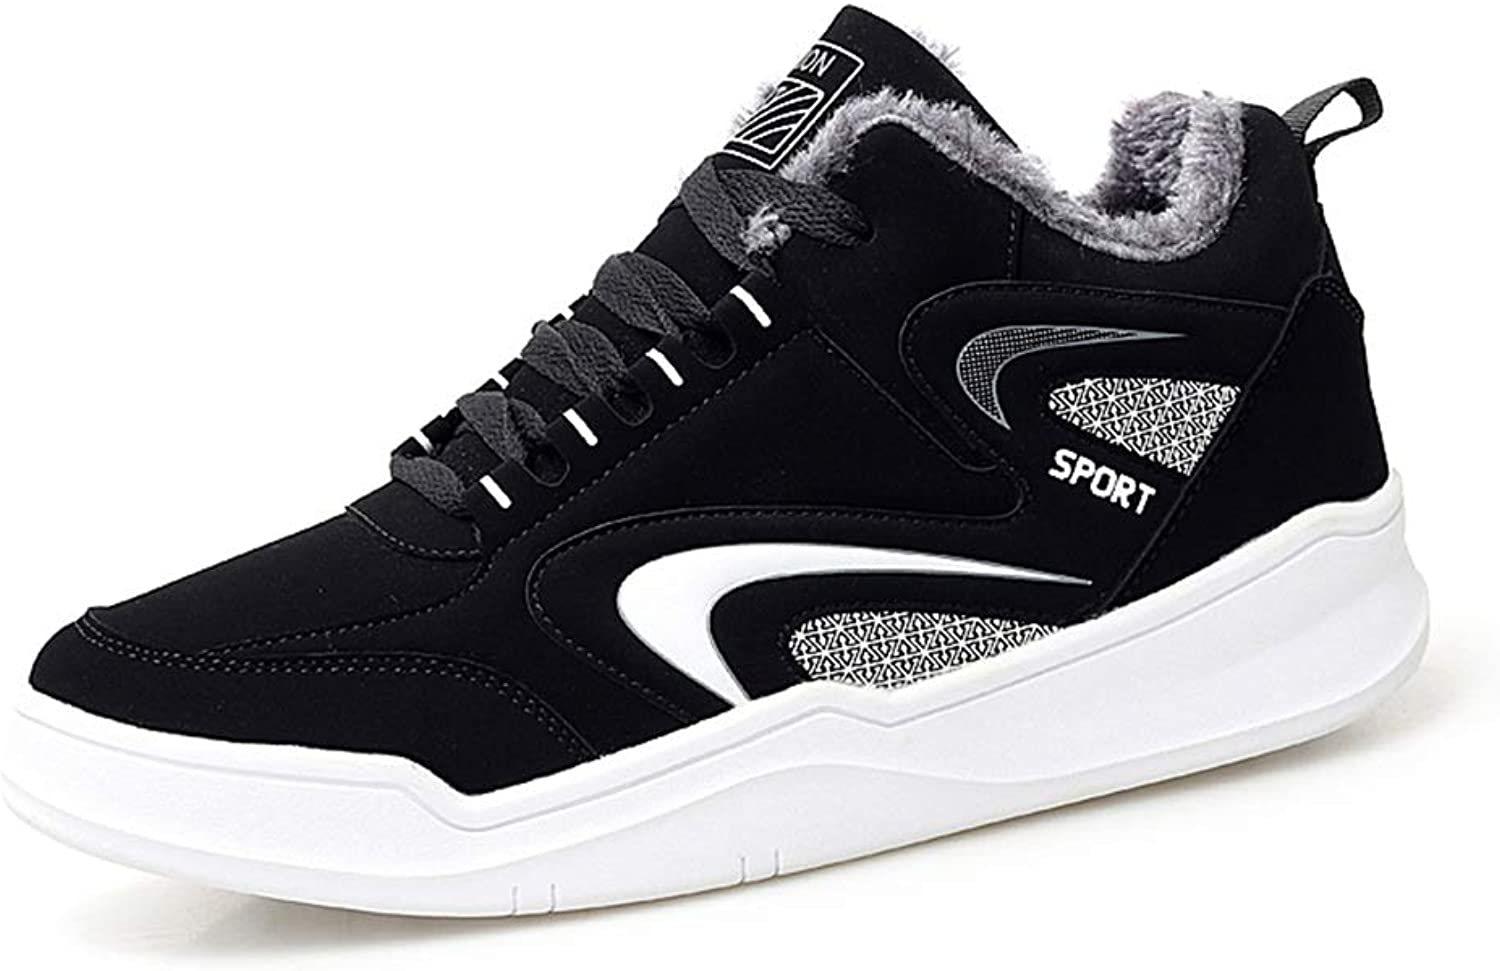 Men's shoes FEIFEI Winter Warm Sports And Leisure Students Trend Board shoes Running shoes (color   01, Size   US9-9.5 EU40 UK7 CN41)